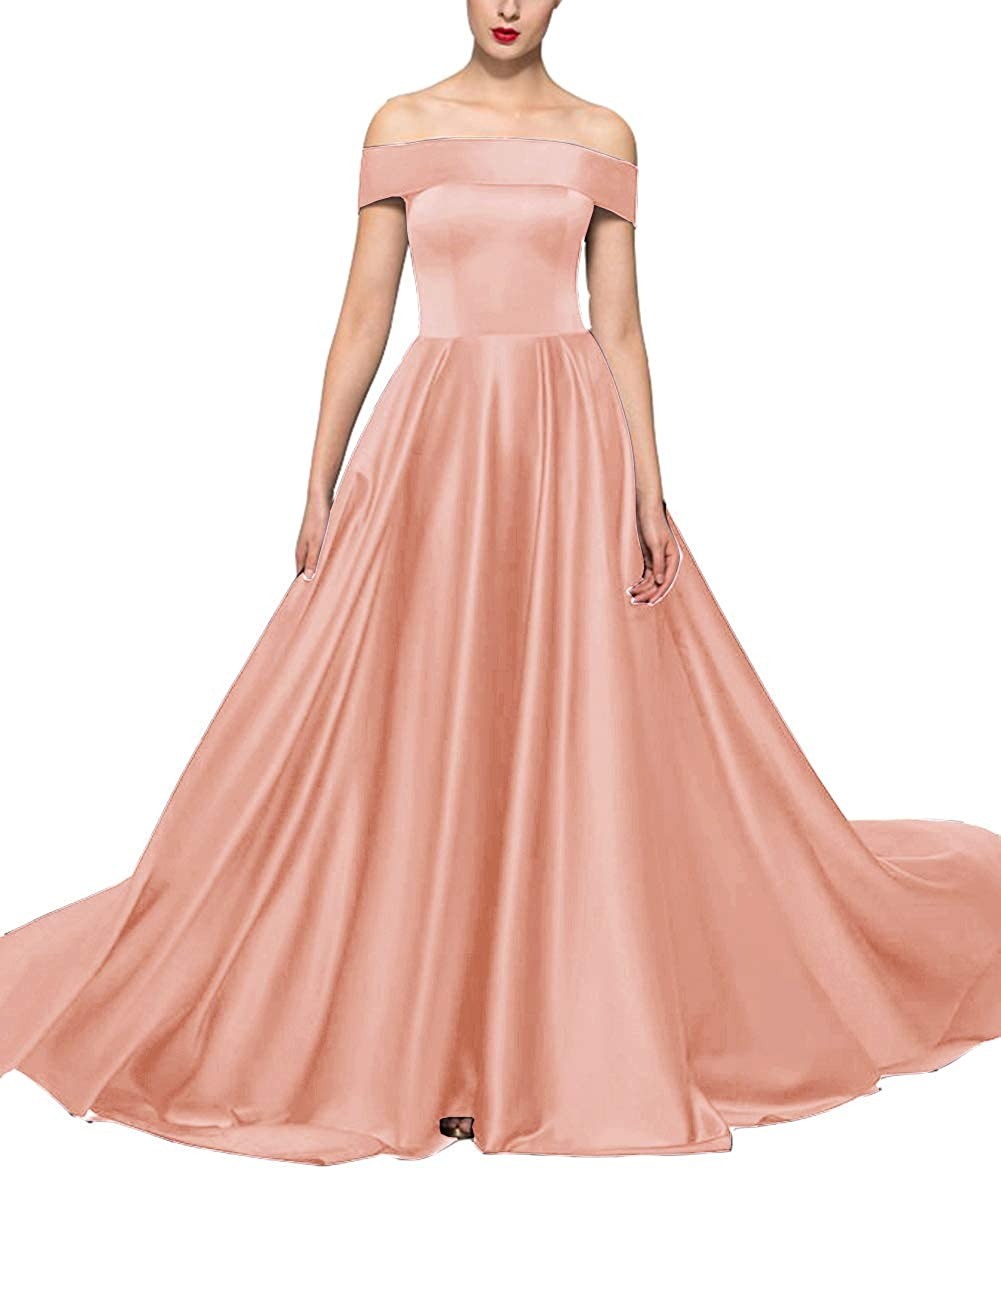 Peach Uther Formal Wedding Guest Party Dresses Off The Shoulder ALine Long Evening Dress